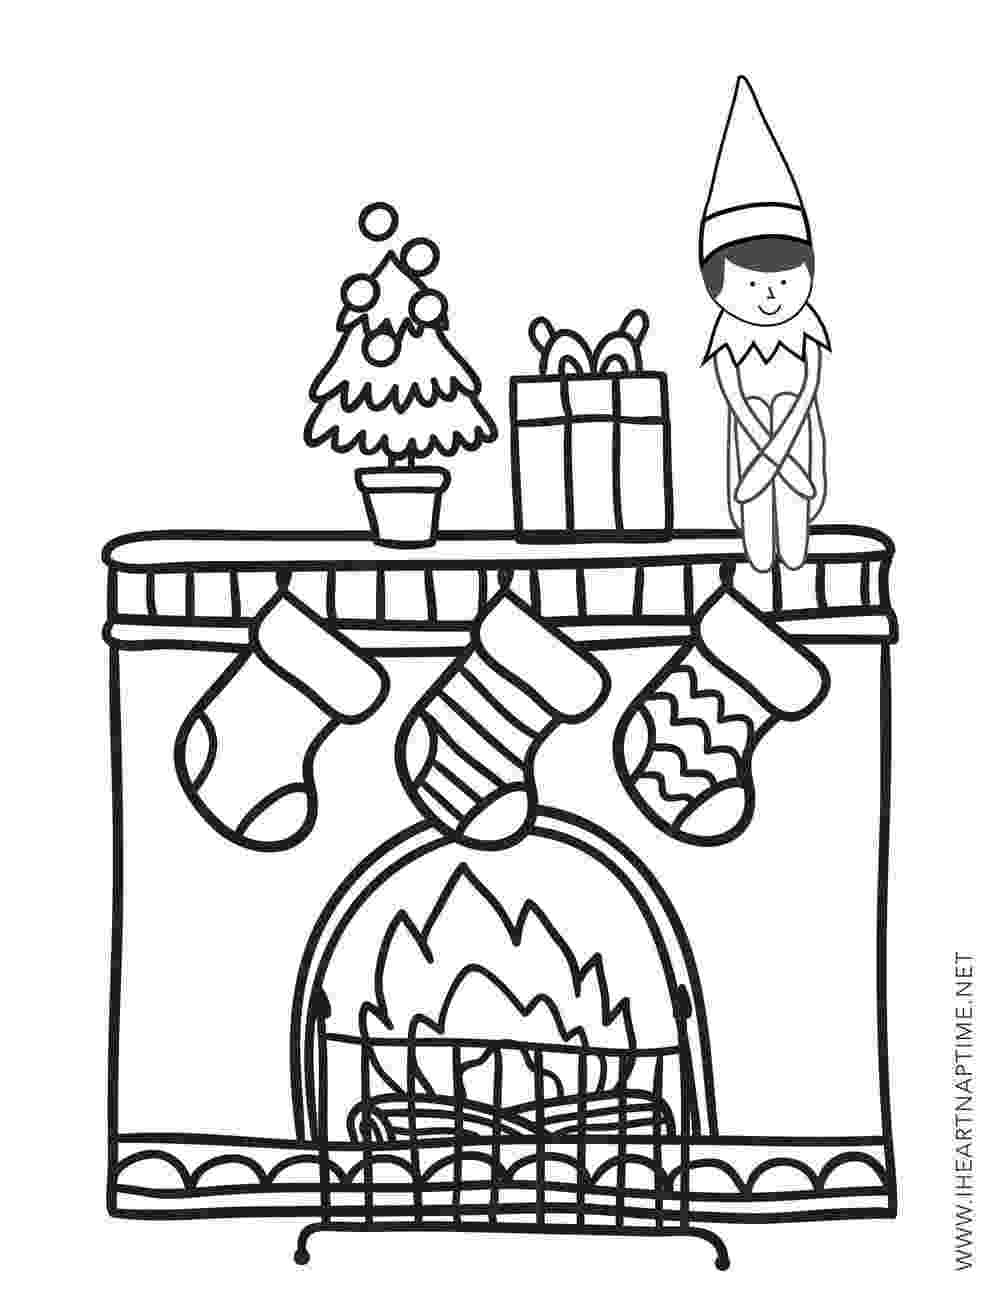 elf on shelf coloring pages 15 best coloring the on the shelf images on pinterest elf shelf on coloring pages